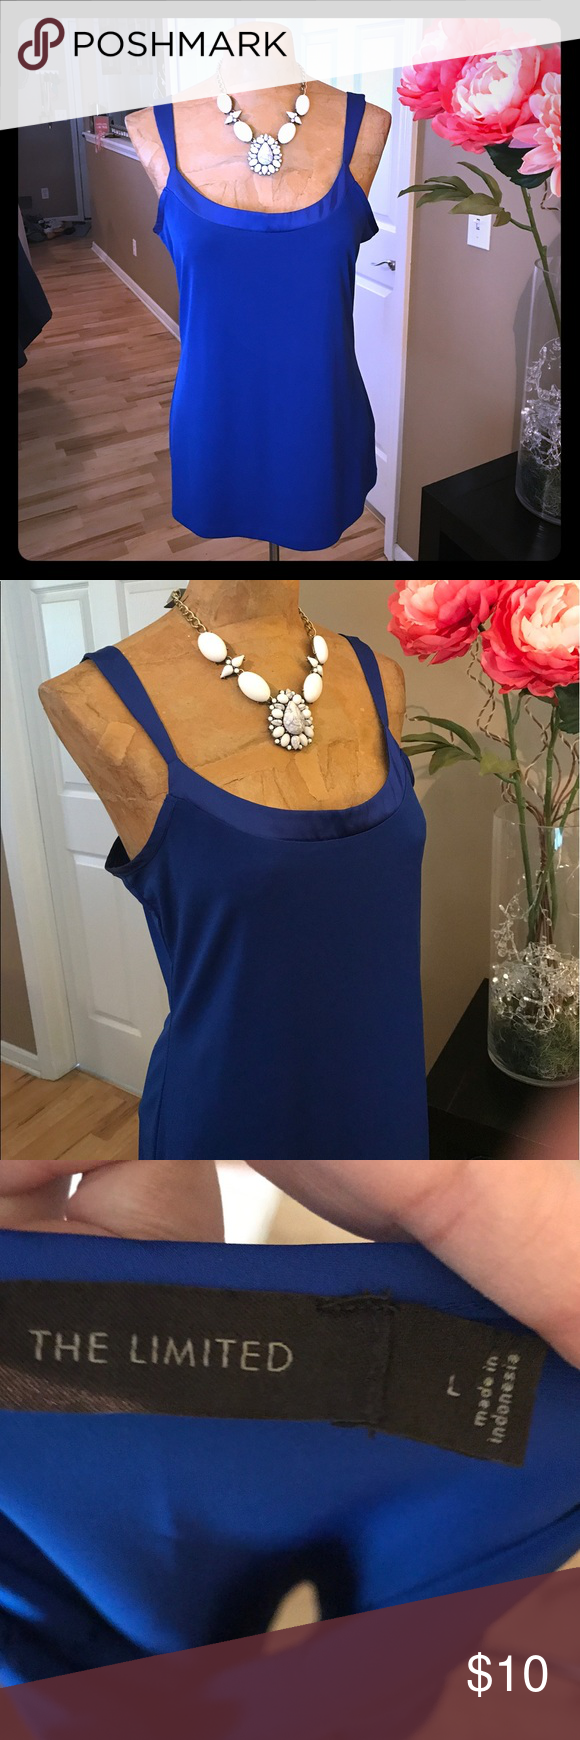 Blue Tank top The Limited. NWOT! Never worn. Bright blue tank top with adjustable lingerie straps. Satin trim. Layer with a blazer or wear solo! Bundle and save! The Limited Tops Tank Tops